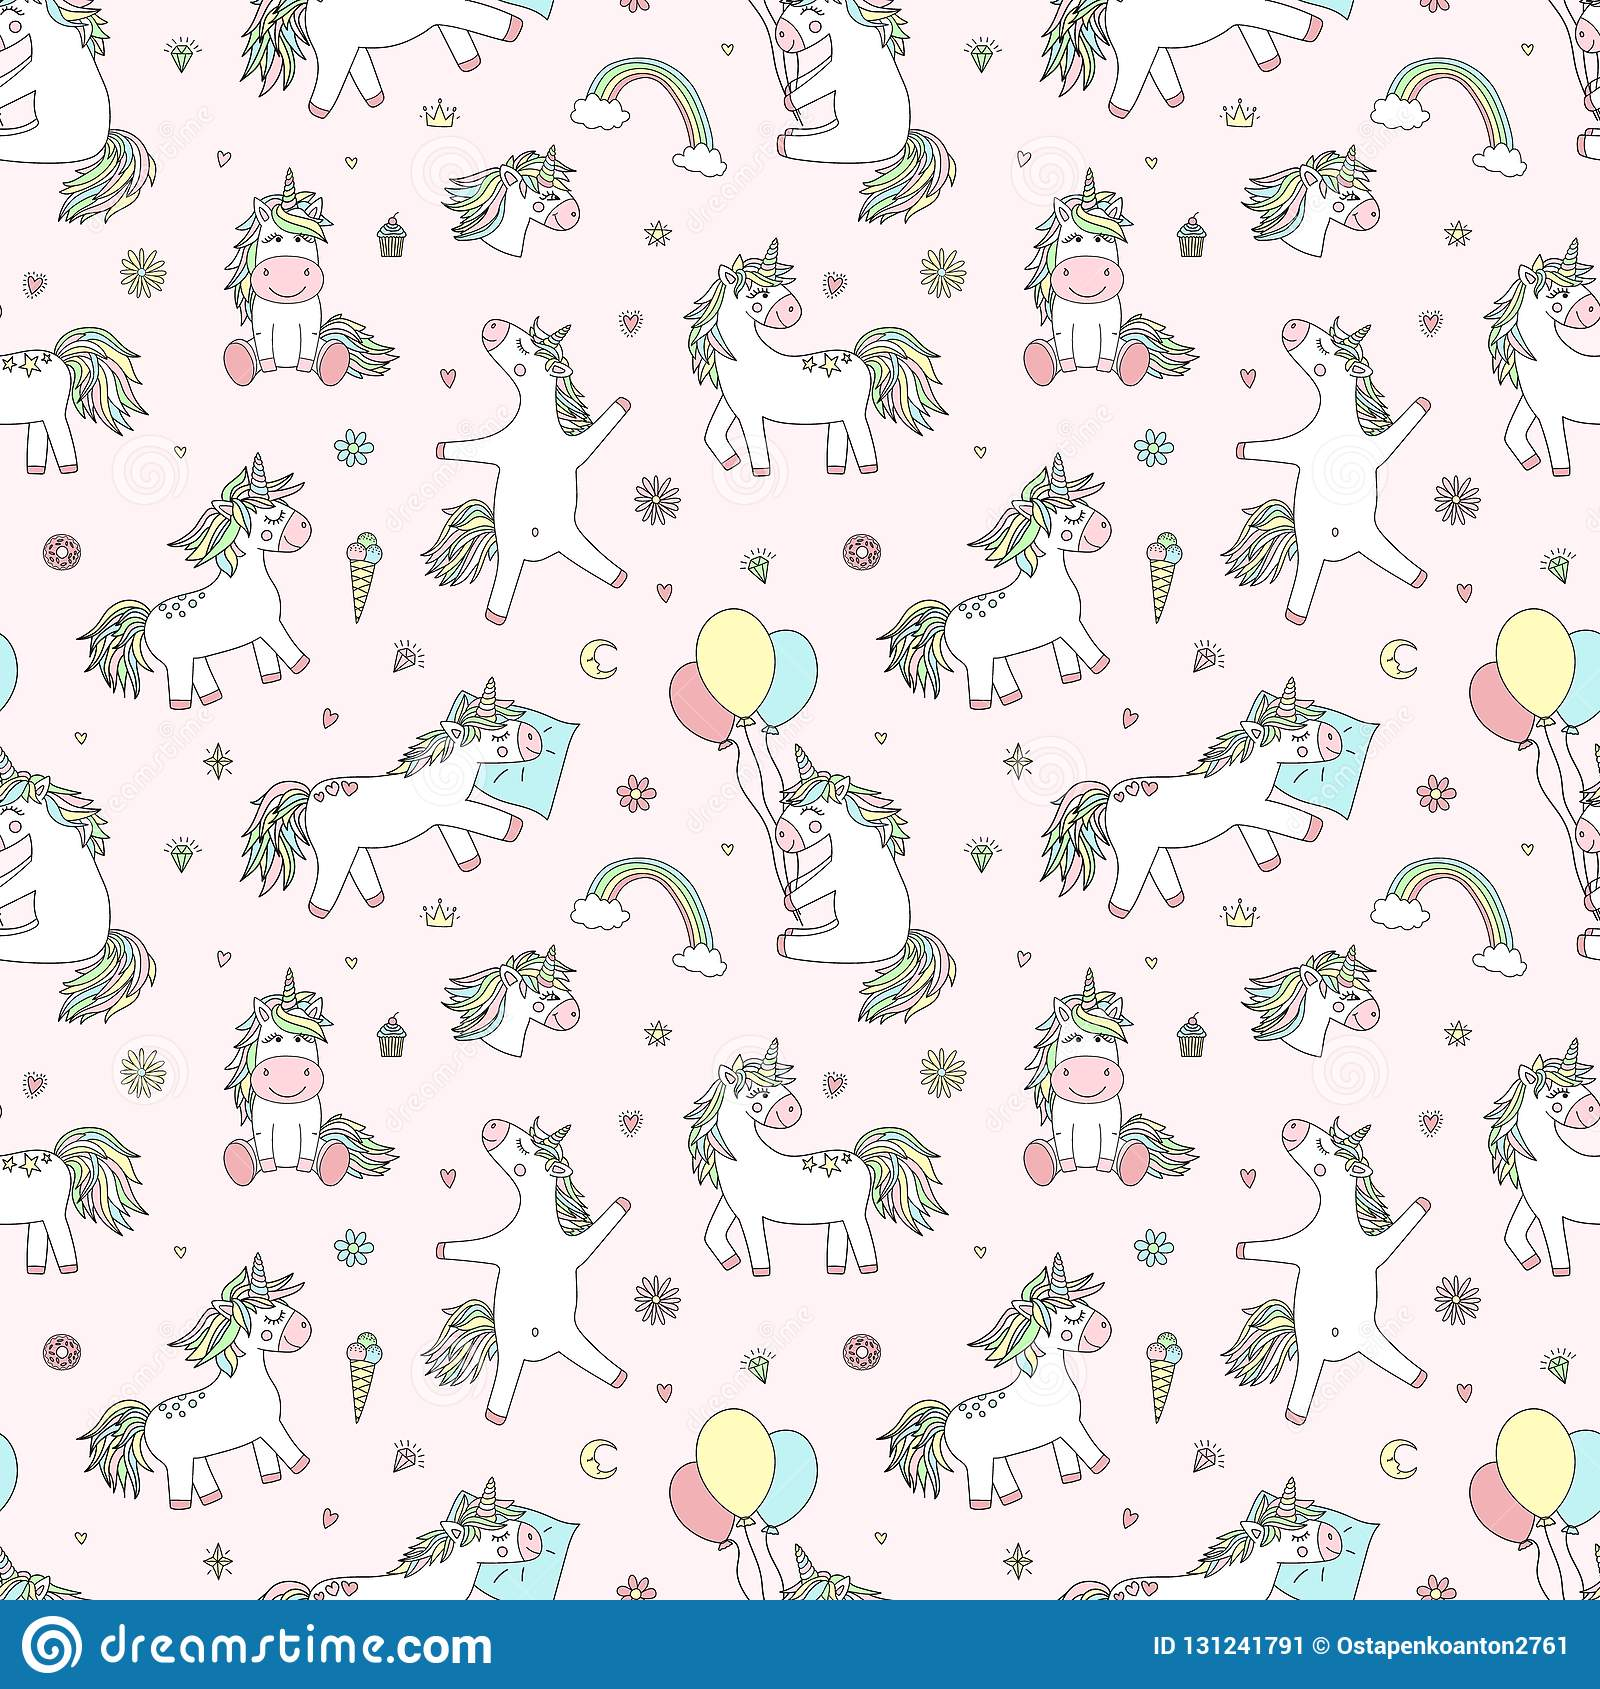 Seamless pattern of hand-drawn cartoon magical unicorns with diamonds, hearts, balloons, flowers, stars, crowns. Vector image for